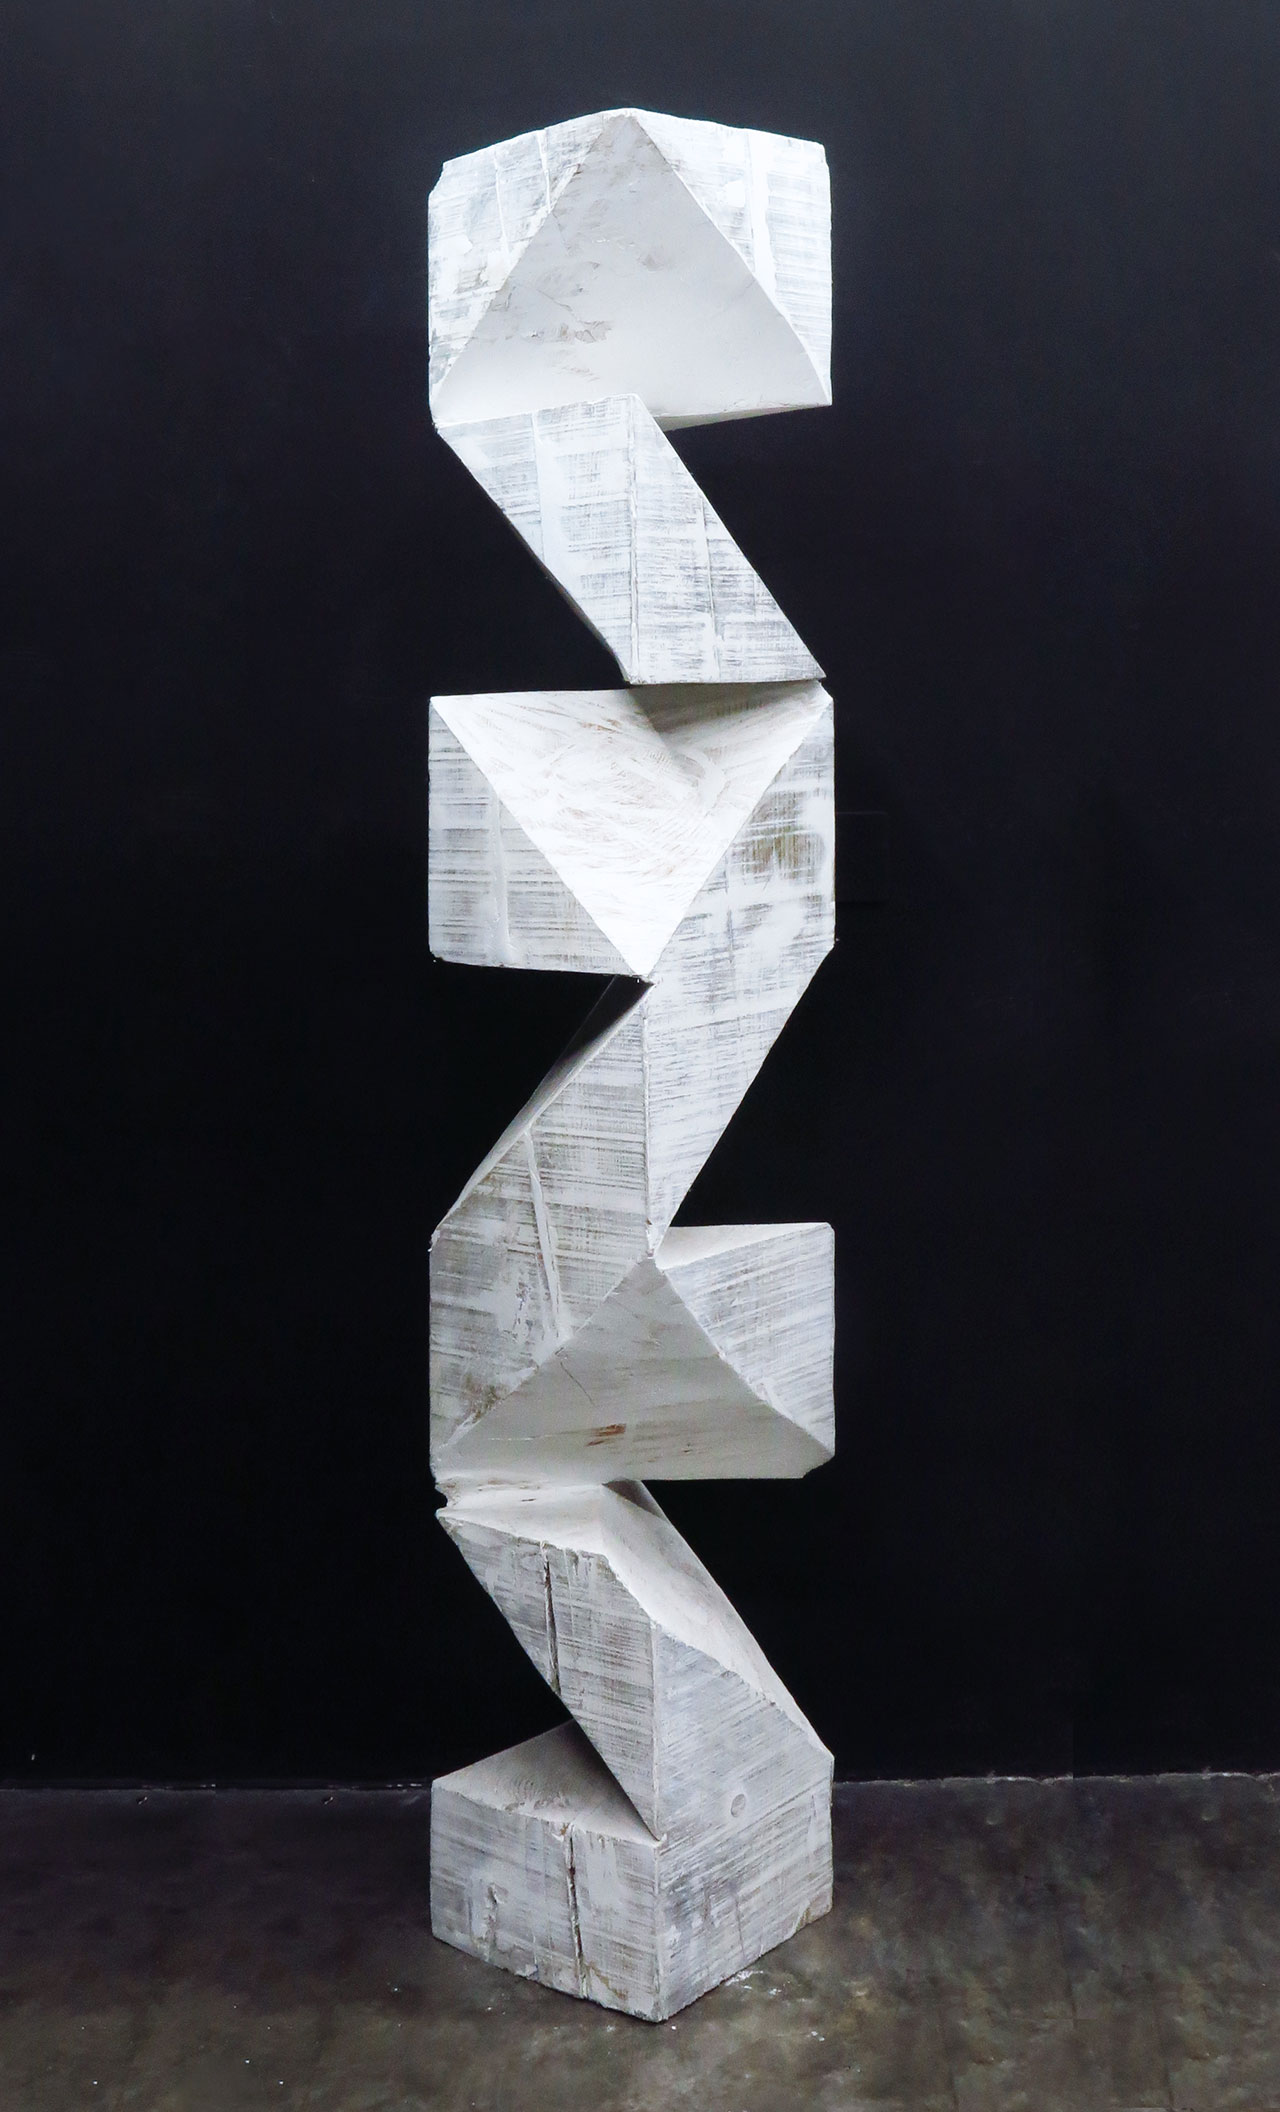 Aldo Chaparro, Totem, plaster on wood, 30 x 30 x 120 cm, 2014. Courtesy PEANA Projects.